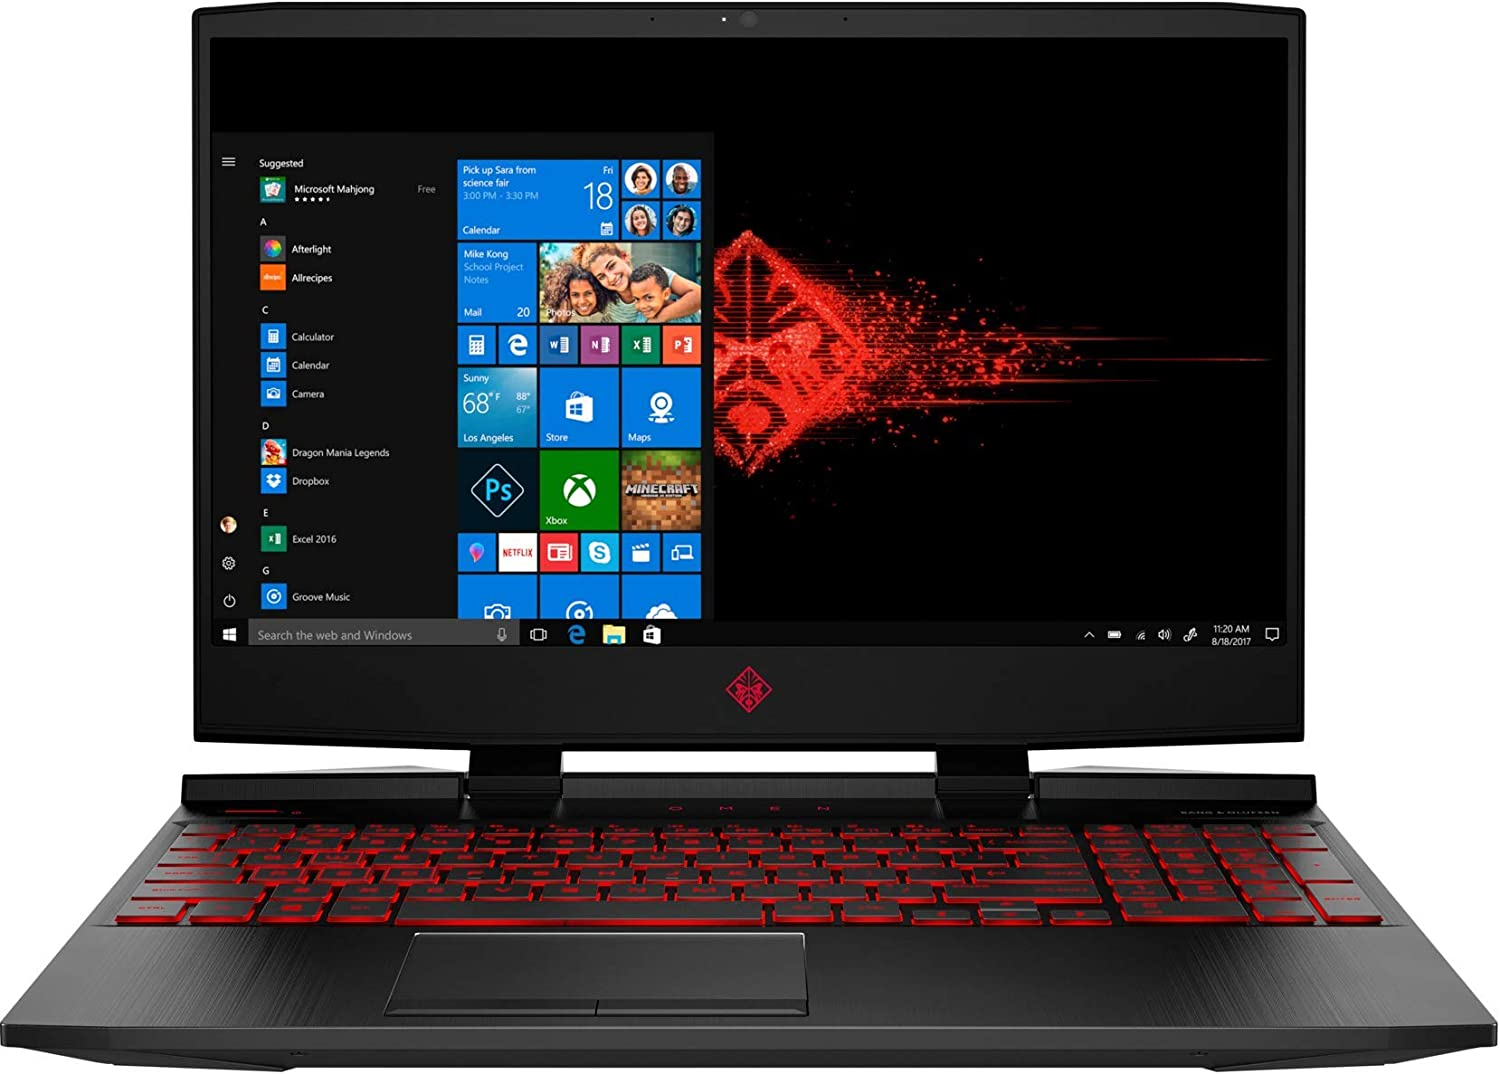 "2019 HP OMEN Gaming Laptop Computer, 9th Gen Intel Quad-Core i5-9300H up to 4.1GHz, 12GB DDR4 RAM, 1TB HDD + 128GB PCIe SSD, 15.6"" FHD, GeForce GTX 1650 4GB, Wi-Fi 6 AX 200, Bluetooth 5.0, Windows 10"